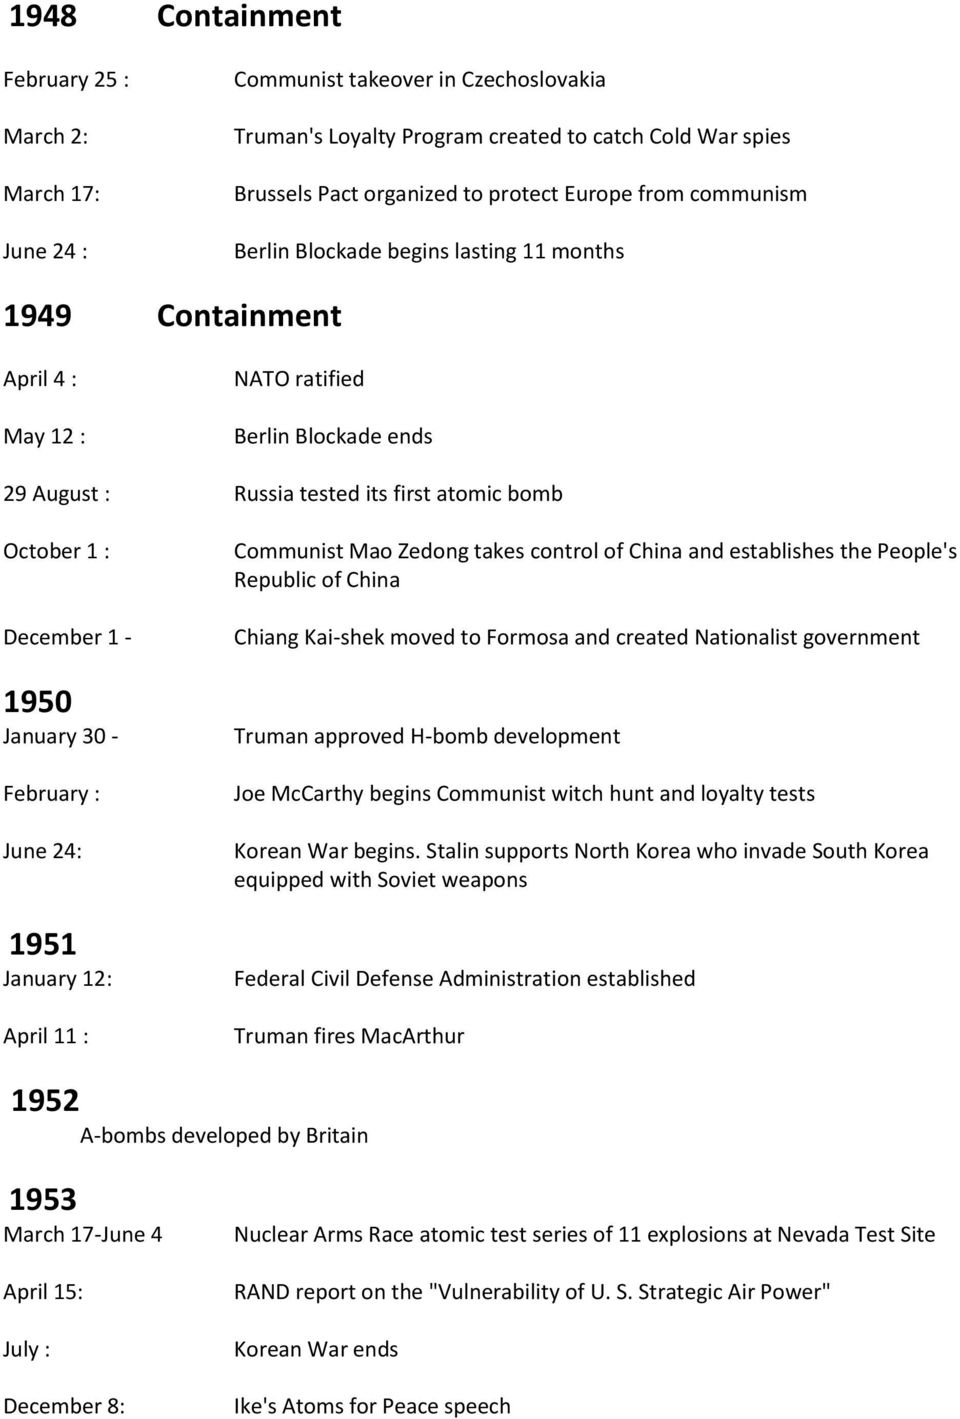 January 30 - February : June 24: 1951 January 12: April 11 : Communist Mao Zedong takes control of China and establishes the People's Republic of China Chiang Kai-shek moved to Formosa and created